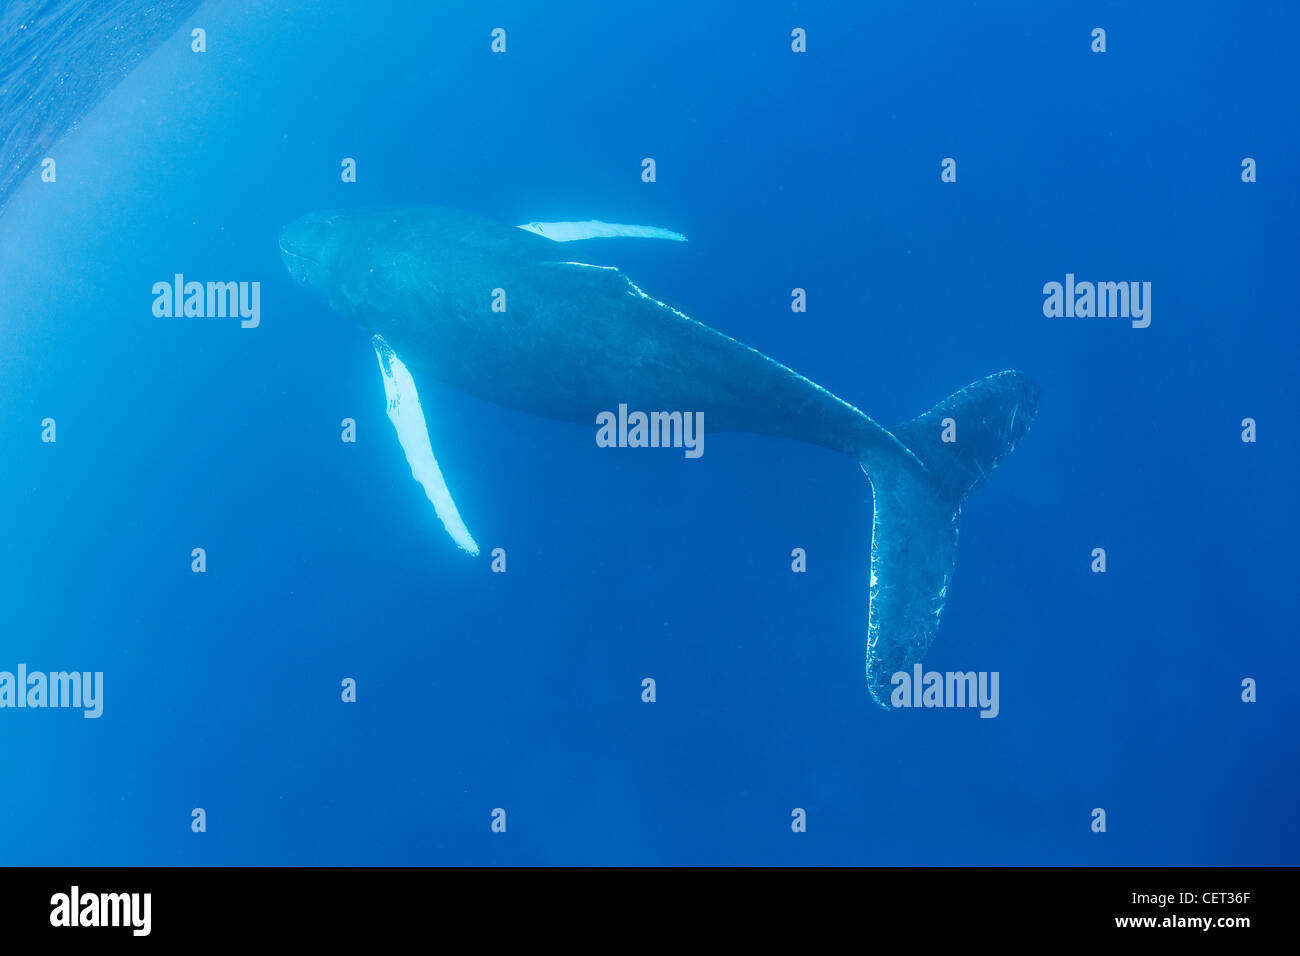 An adult Humpback whale, Megaptera novaeangliae, surfaces to breathe. Adults normally breathe every 15 to 20 minutes. Stock Photo